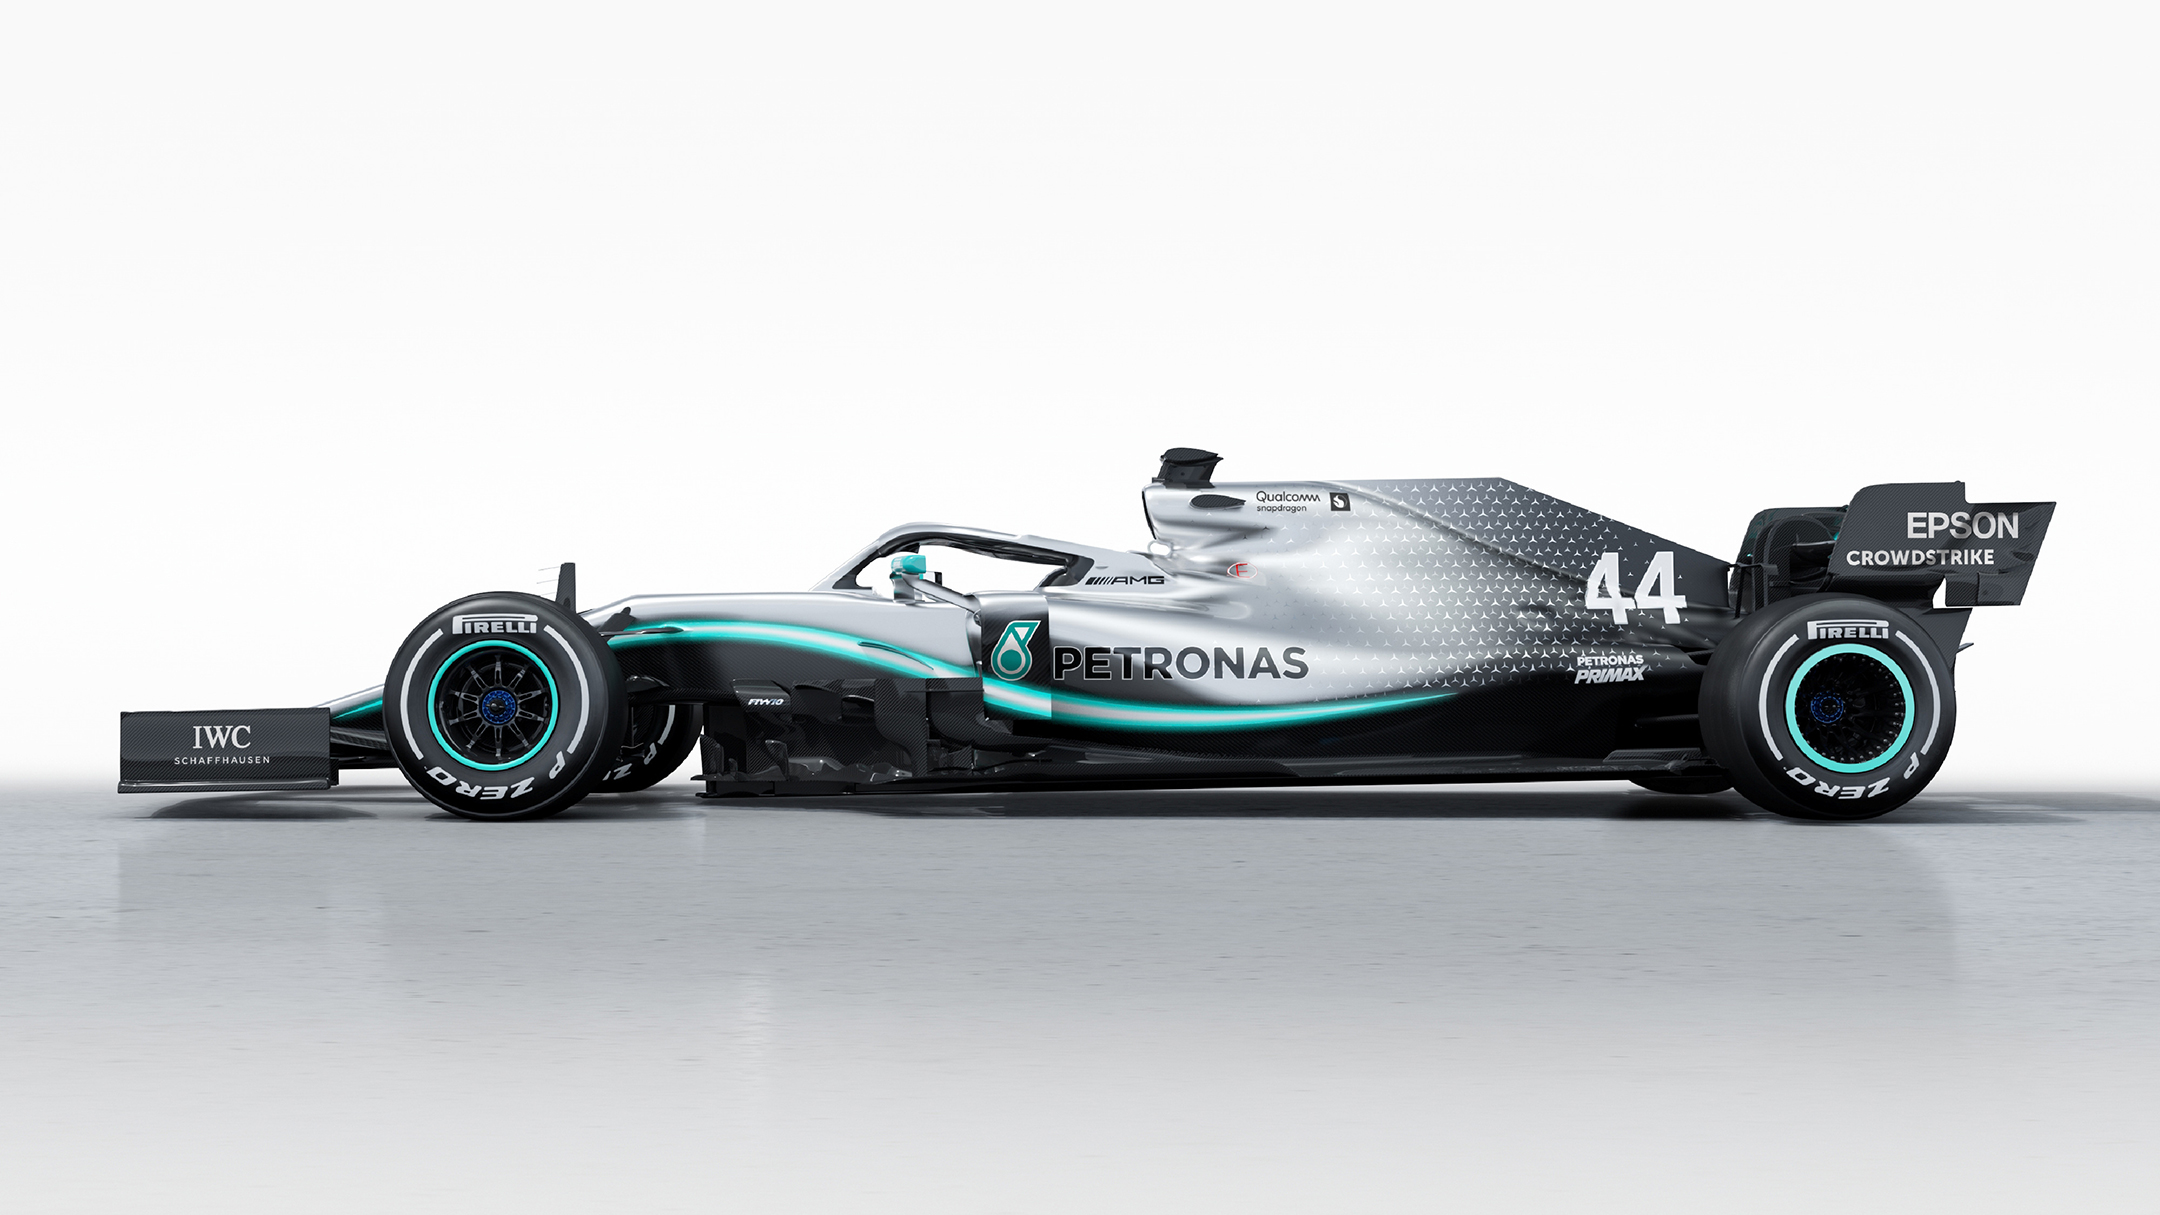 F1 2019 - MERCEDES-AMG W10 - side-face / profil